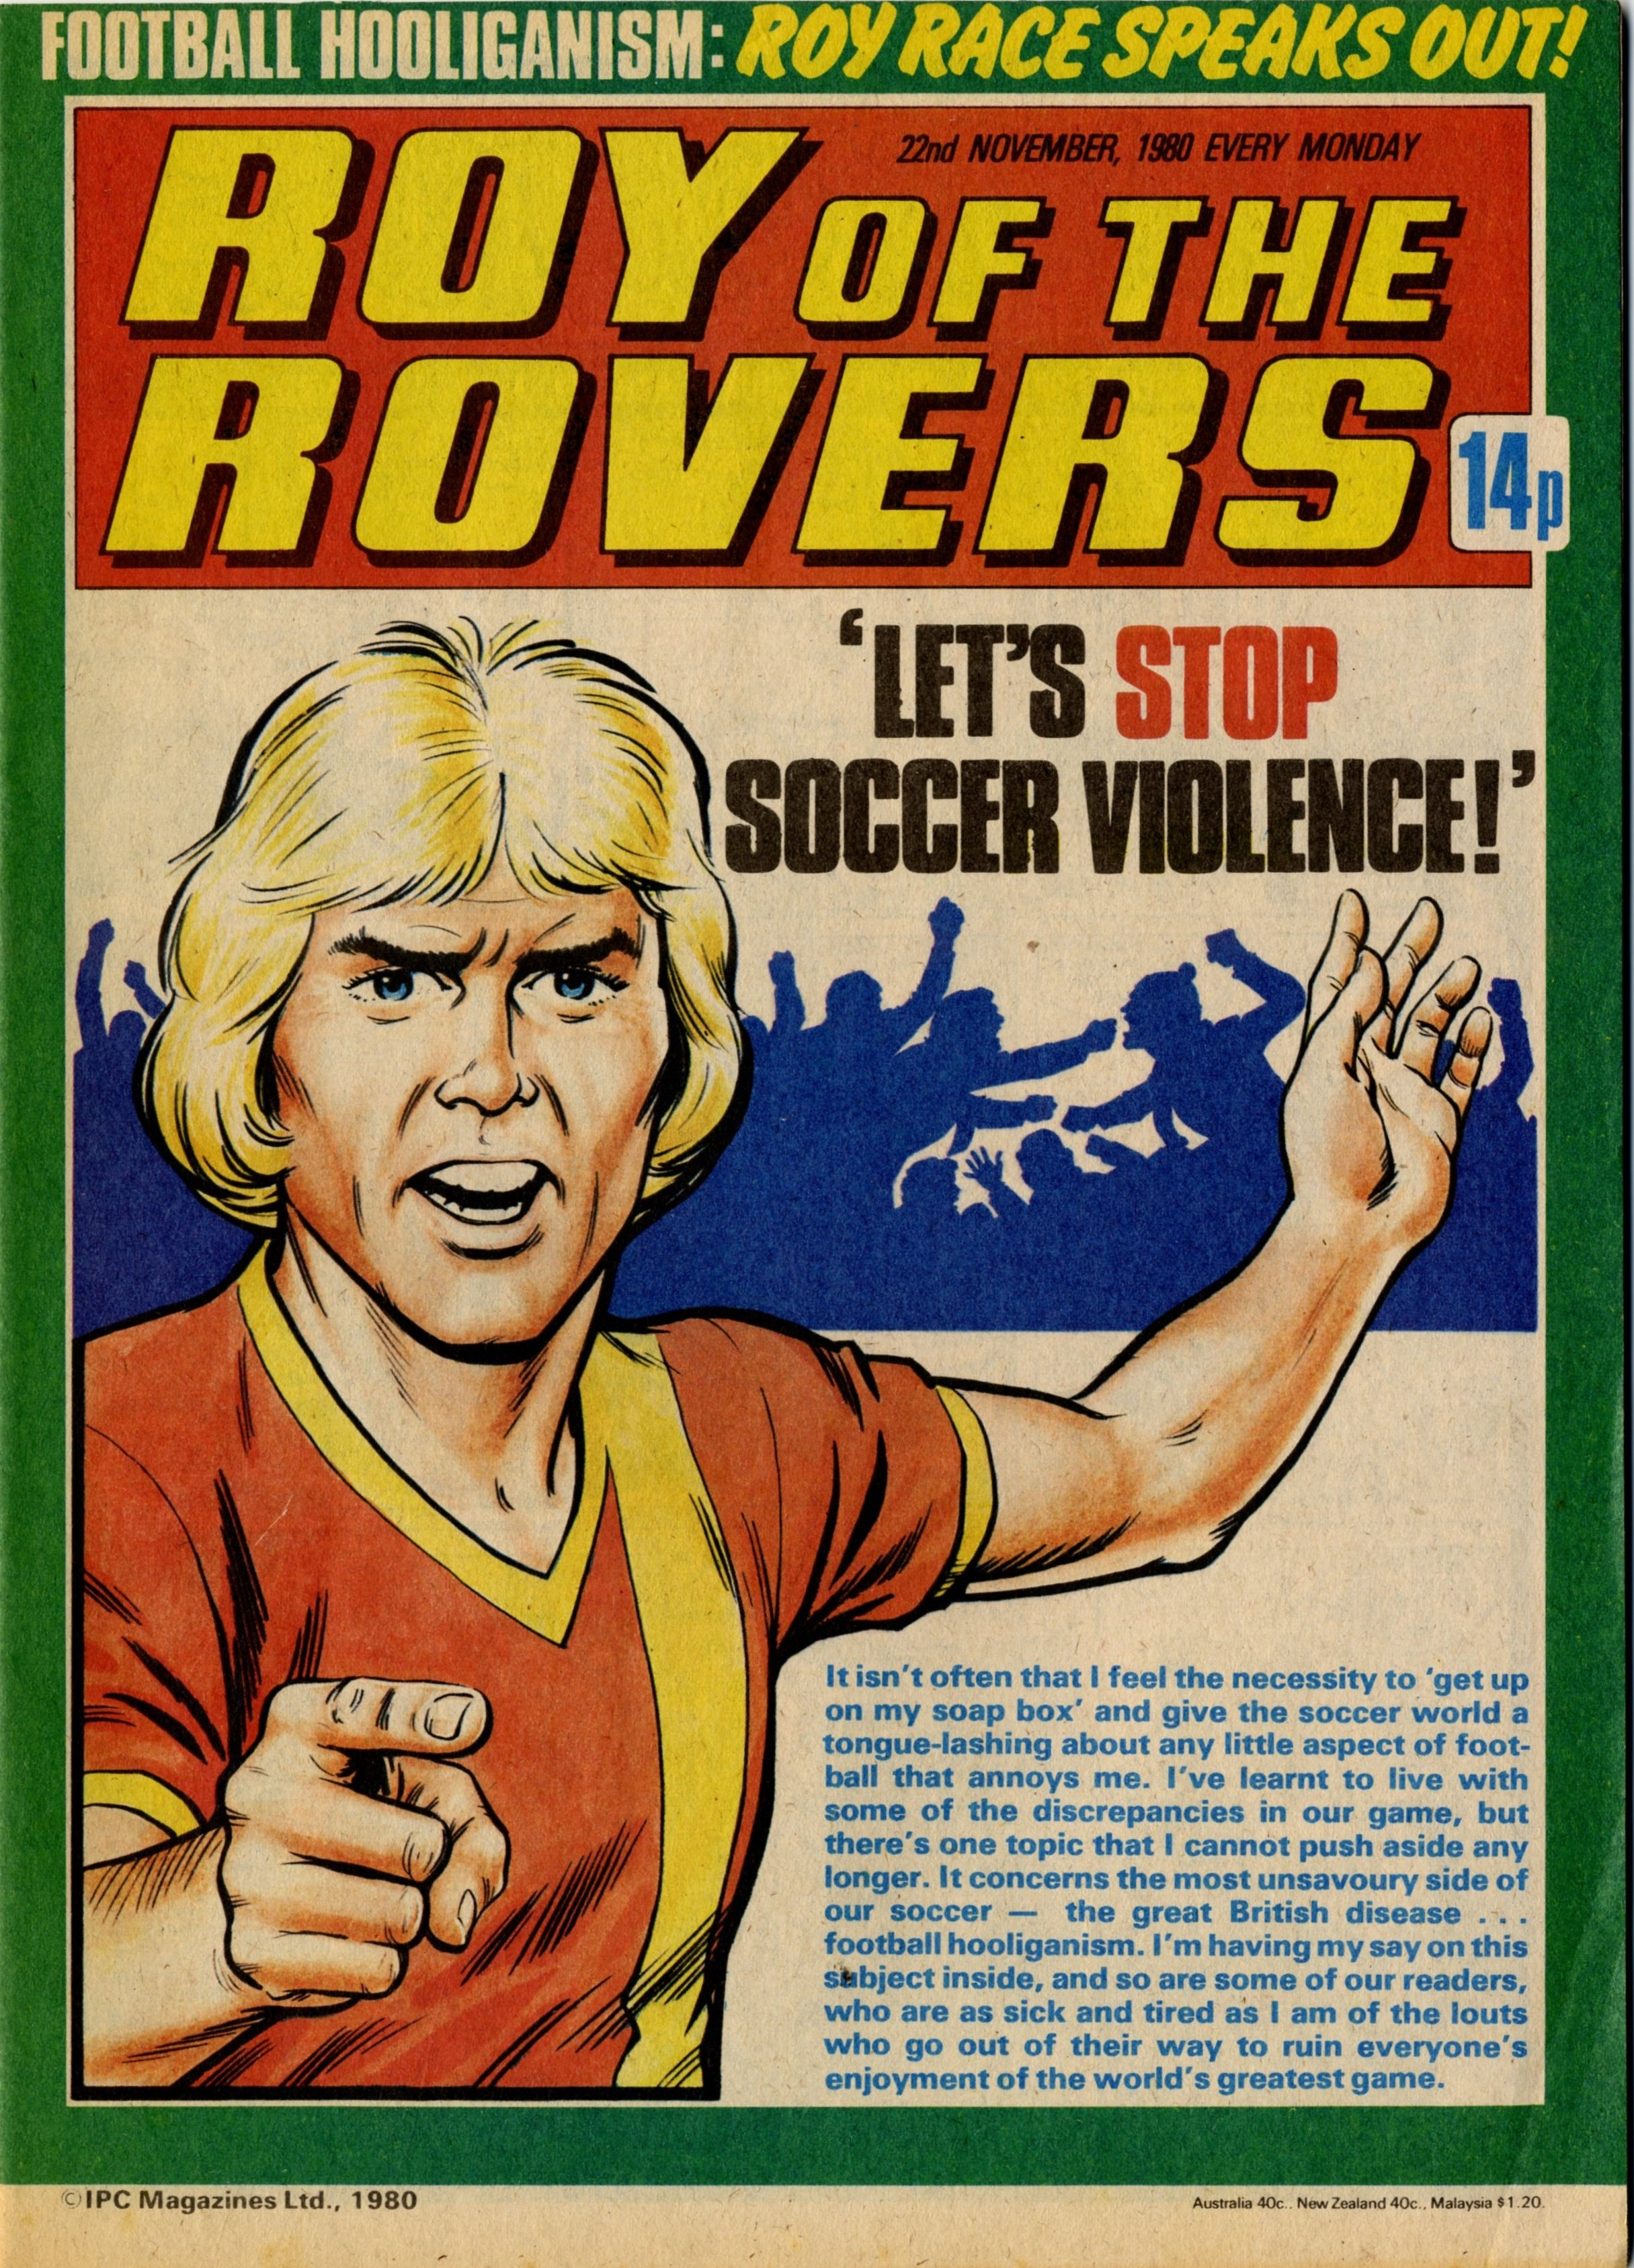 Roy of the Rovers Old comic cover Poster reproduction